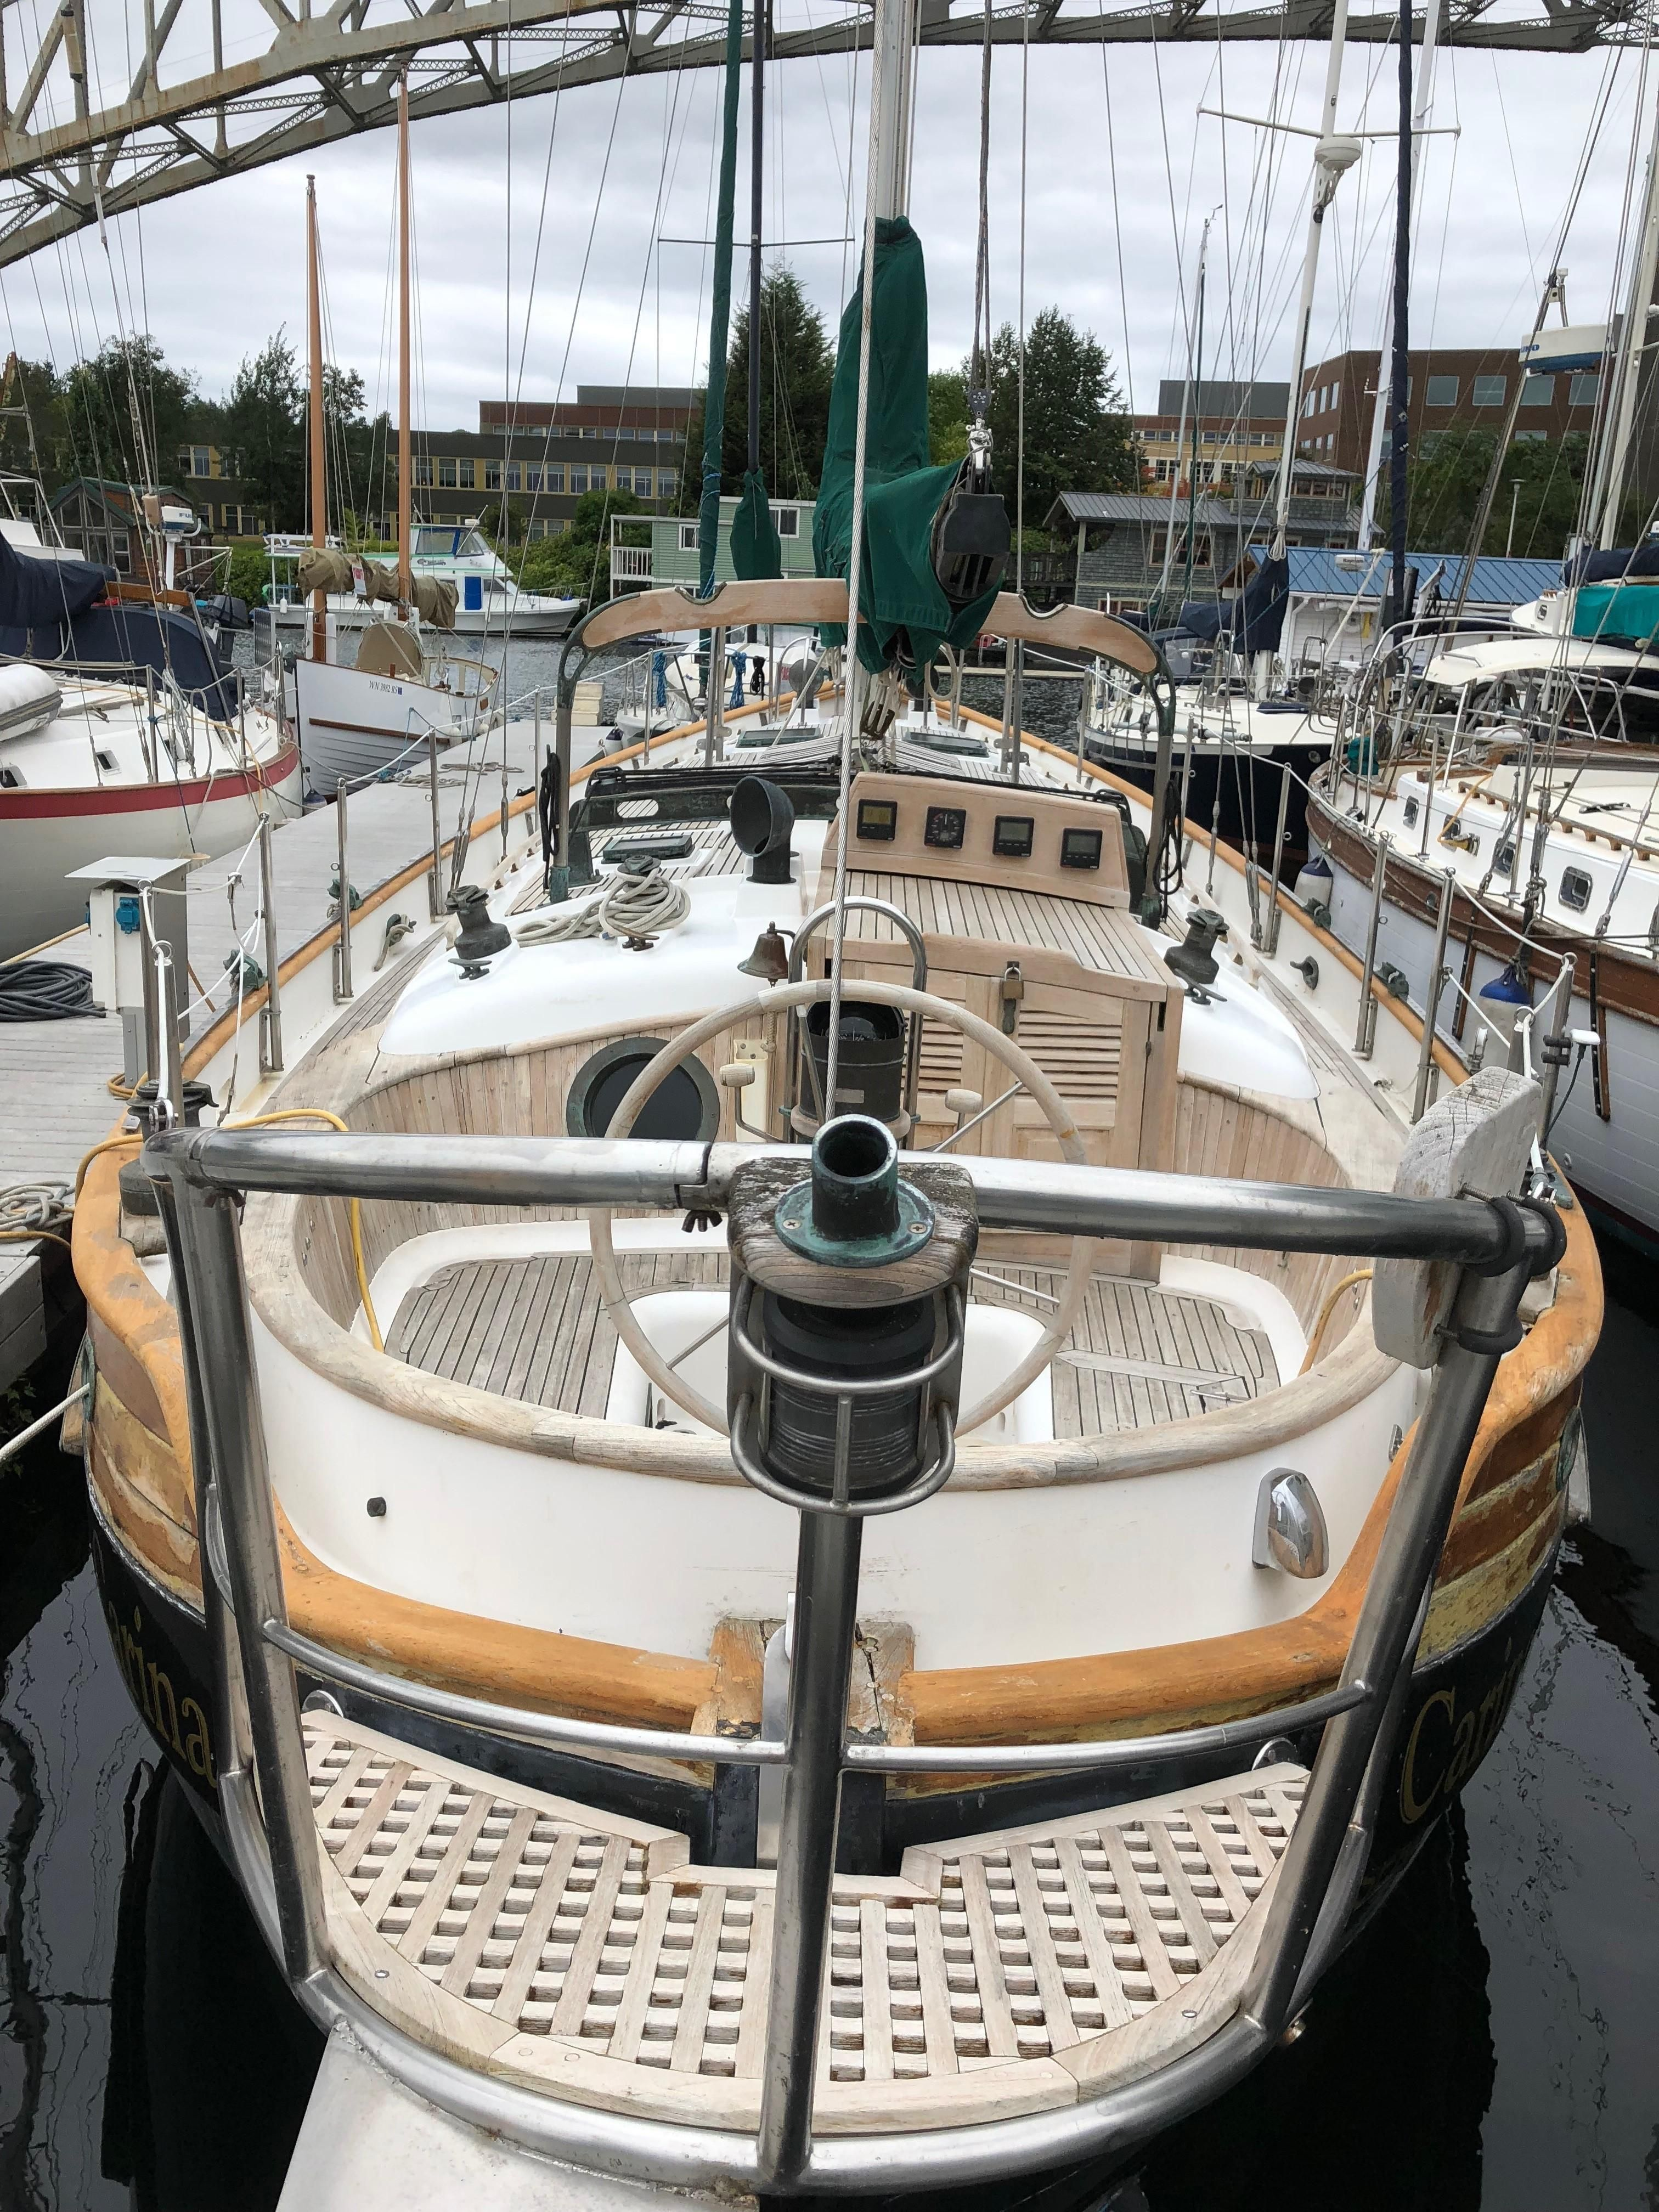 1987 Hans Christian 41 Molokai Sail Boat For Sale Www Yachtworld Com With Images Sailing Yacht Boat Sailing